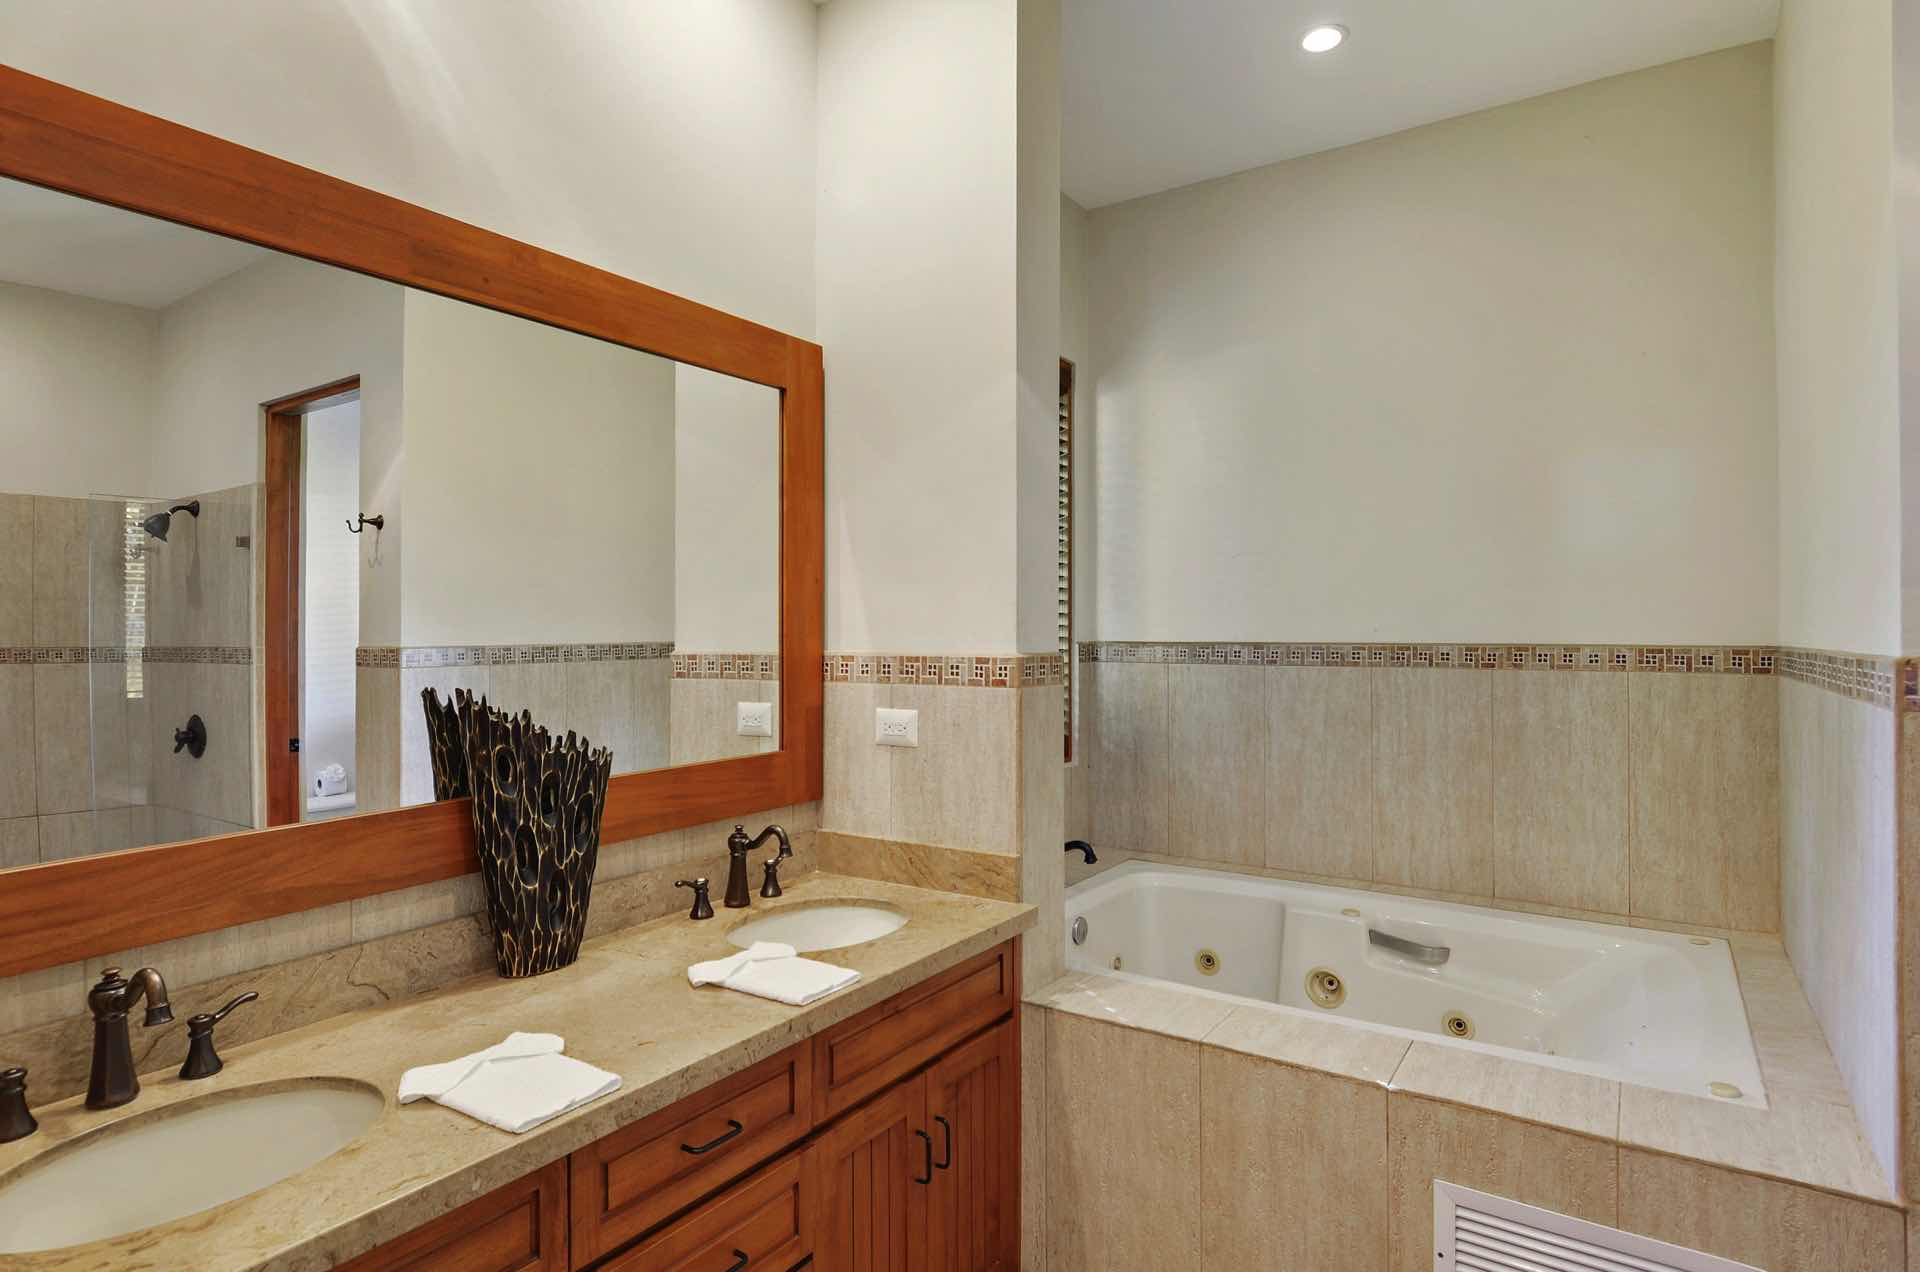 Bathrooms with tub and double sink